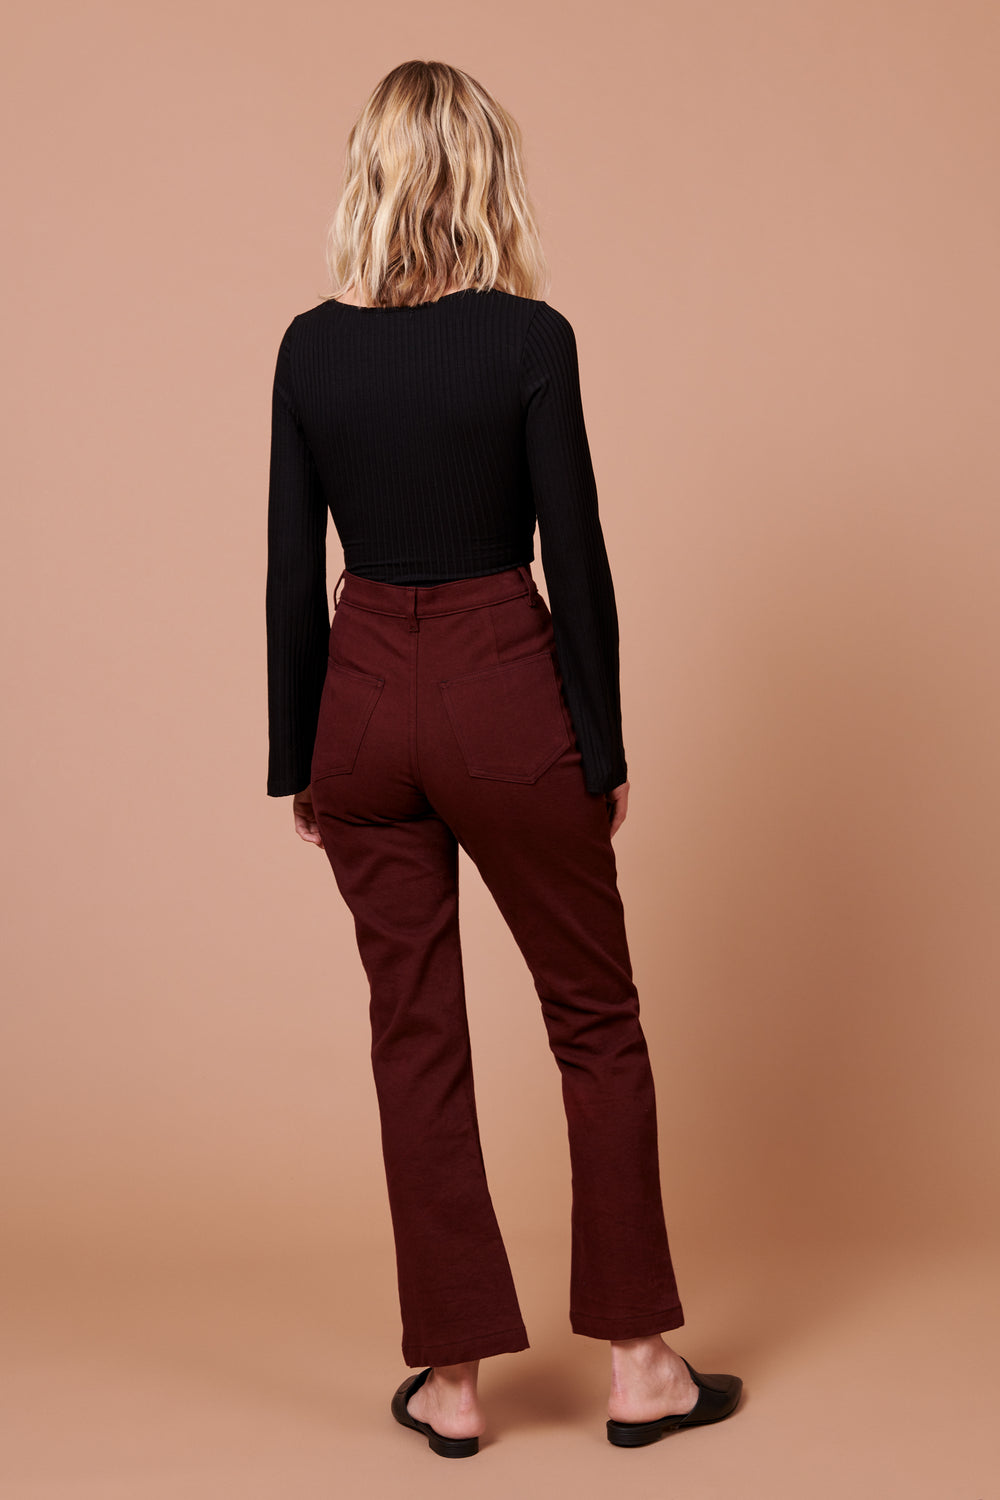 Fae Pant in Plum - Whimsy & Row